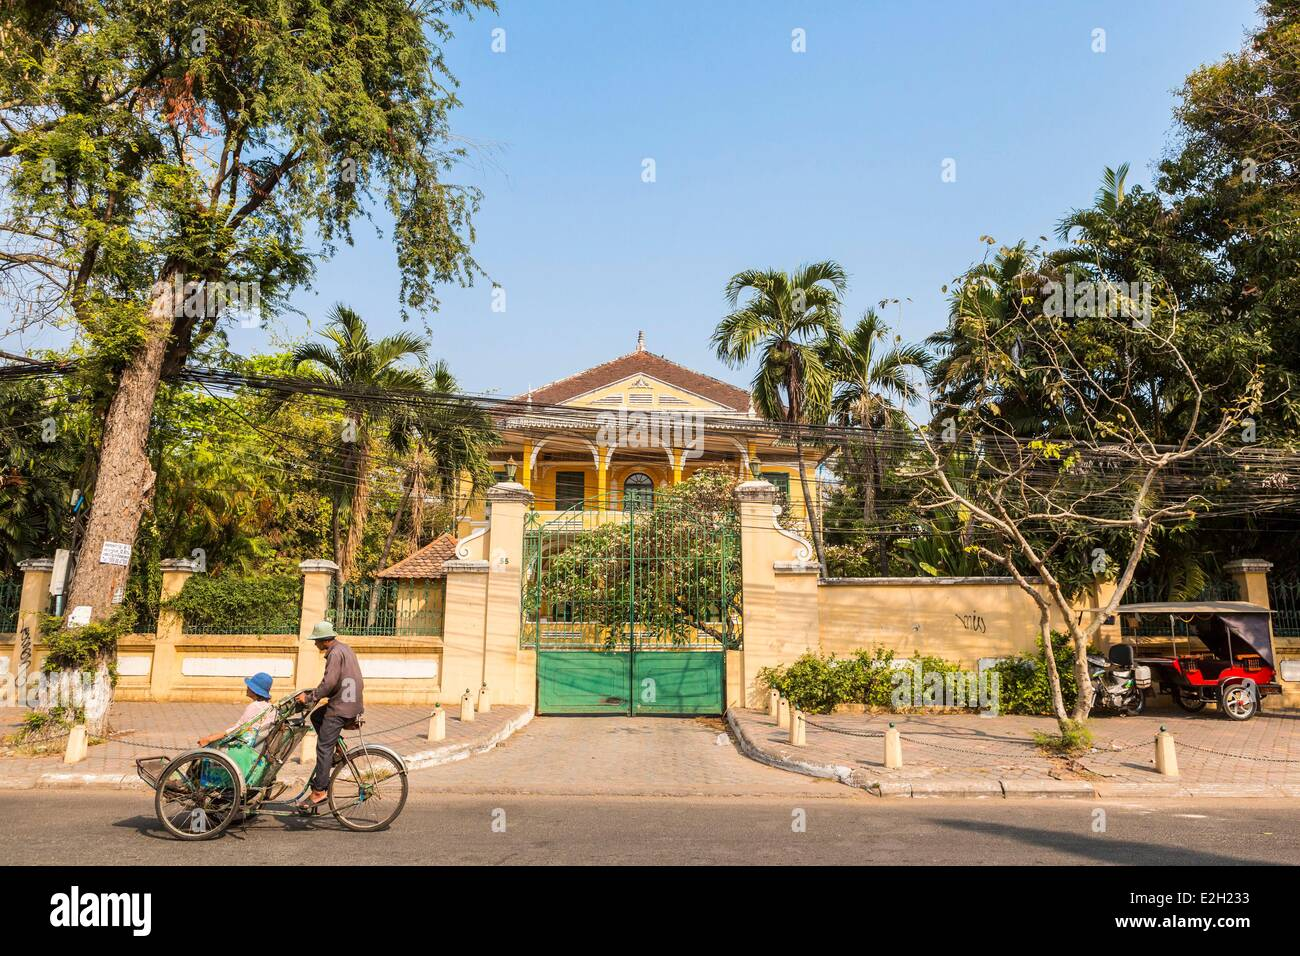 Cambodia Phnom Penh French colonial house in street 178 Stock Photo